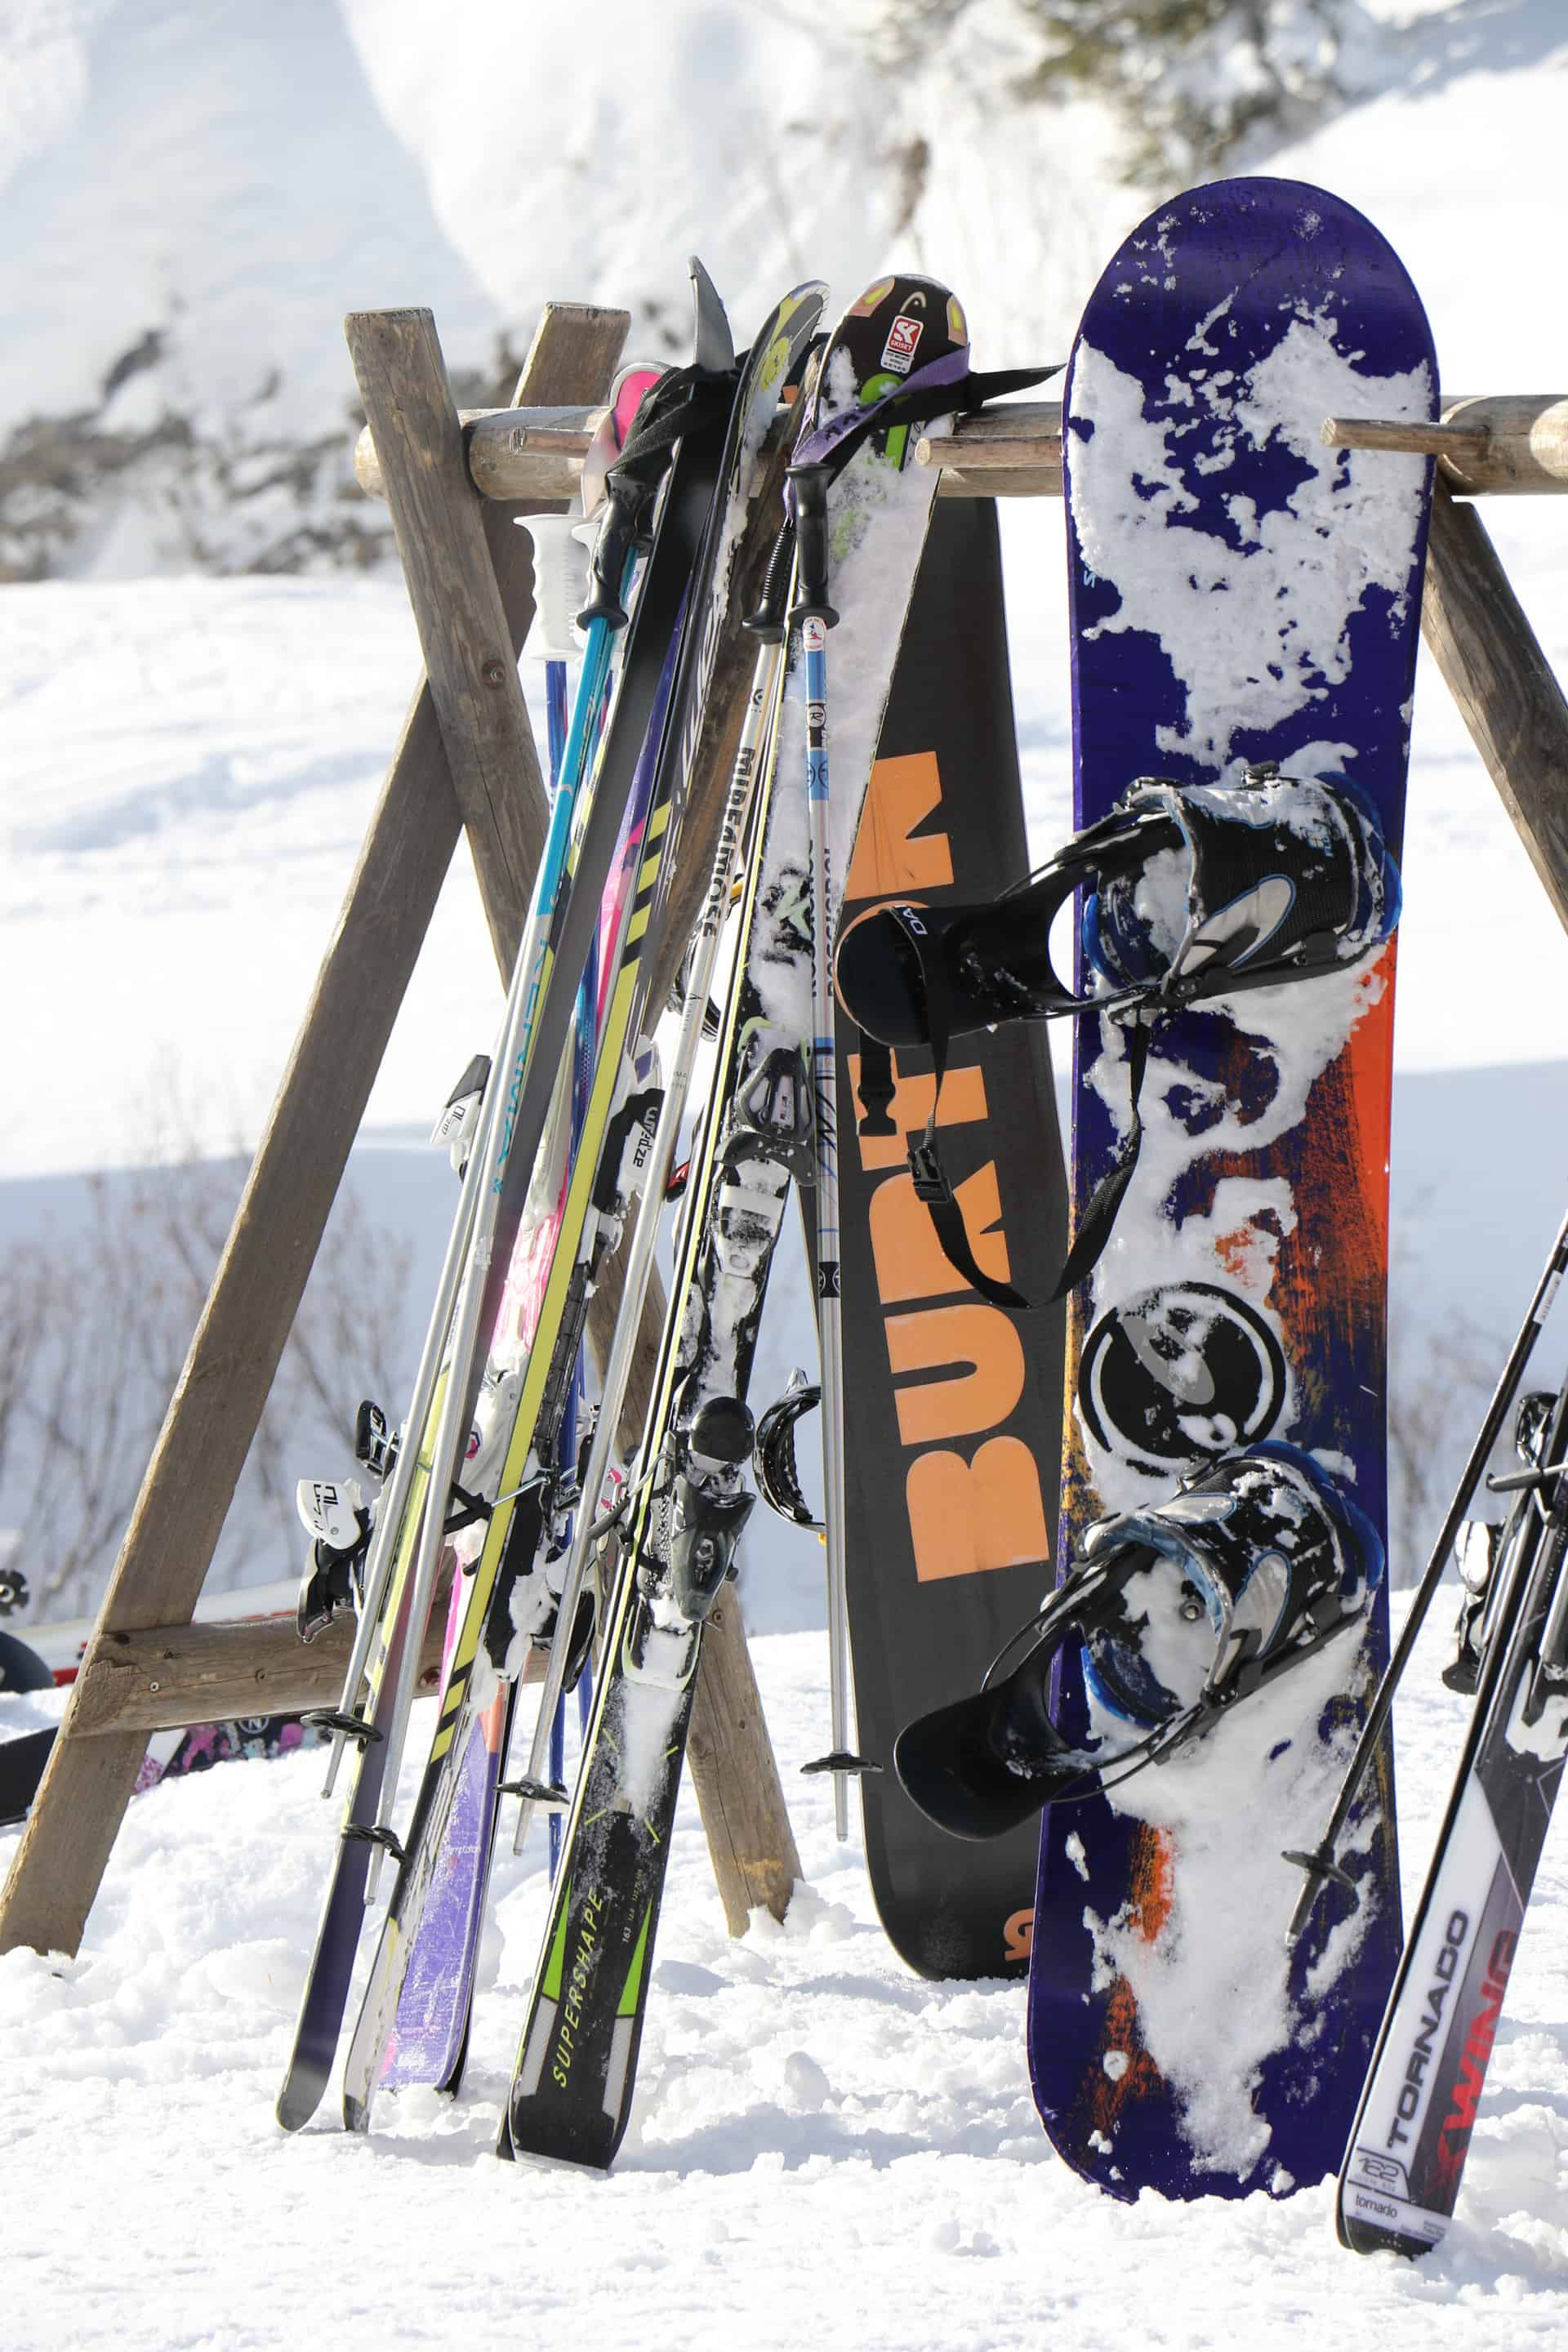 skis and snowboards resting against a pole